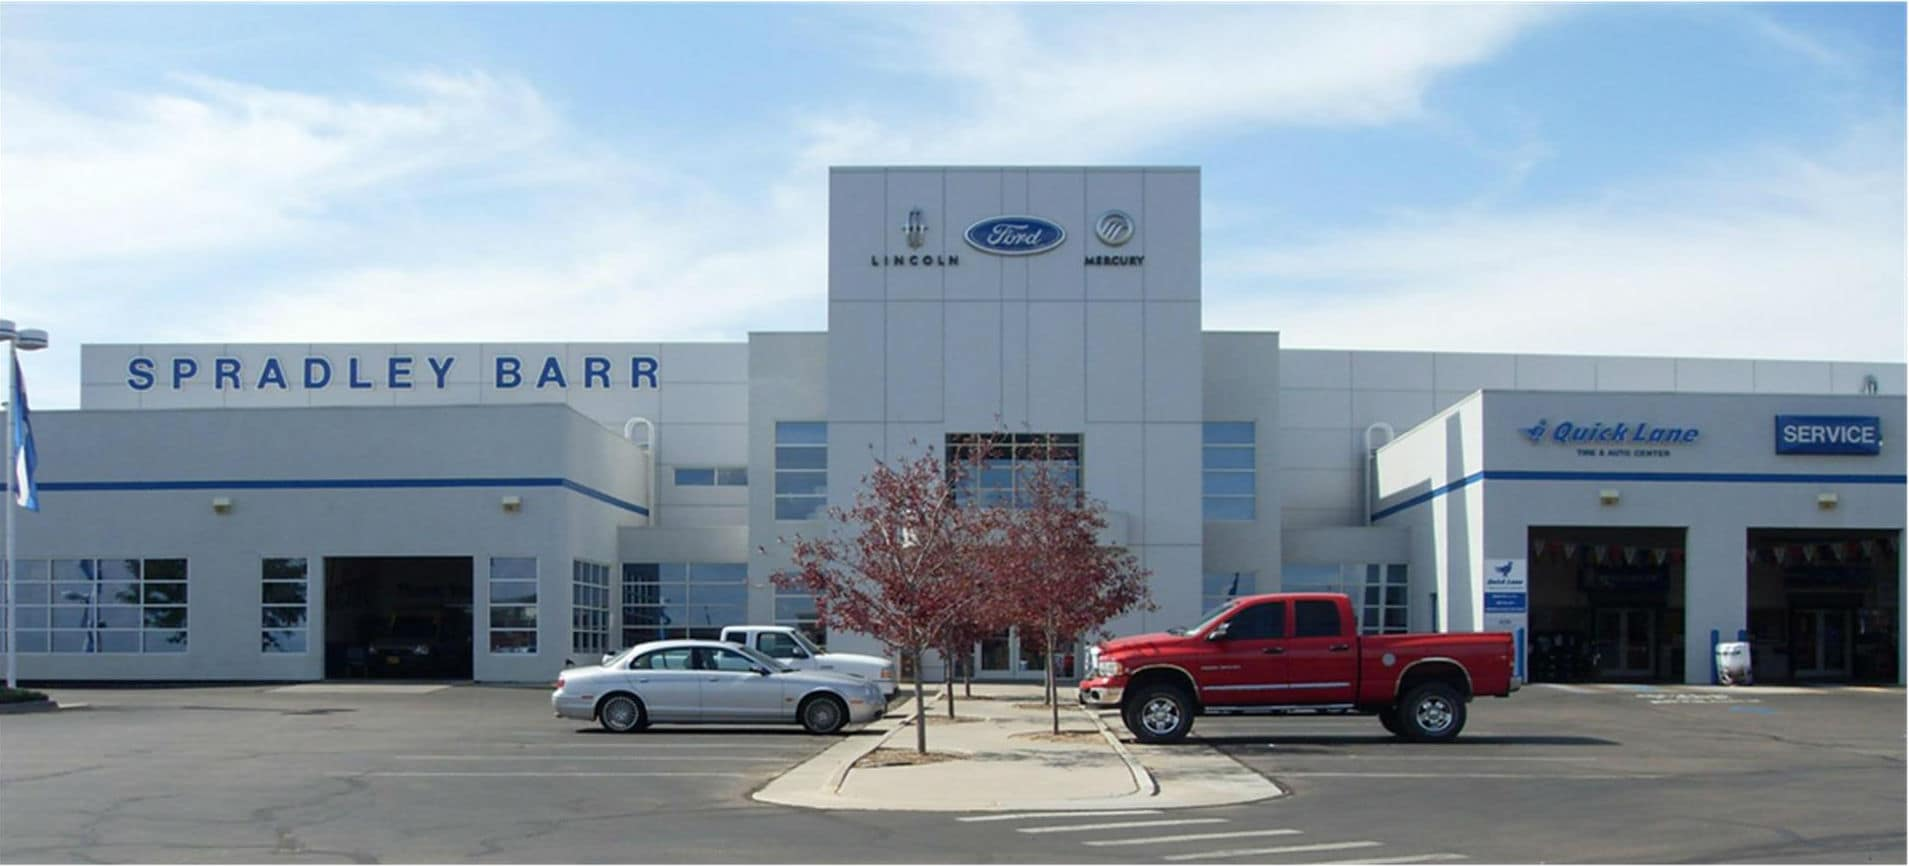 Spradley Barr Ford Greeley >> About Spradley/Barr Ford Lincoln of Greeley Inc. | New Ford and Used Car Dealer | Greeley